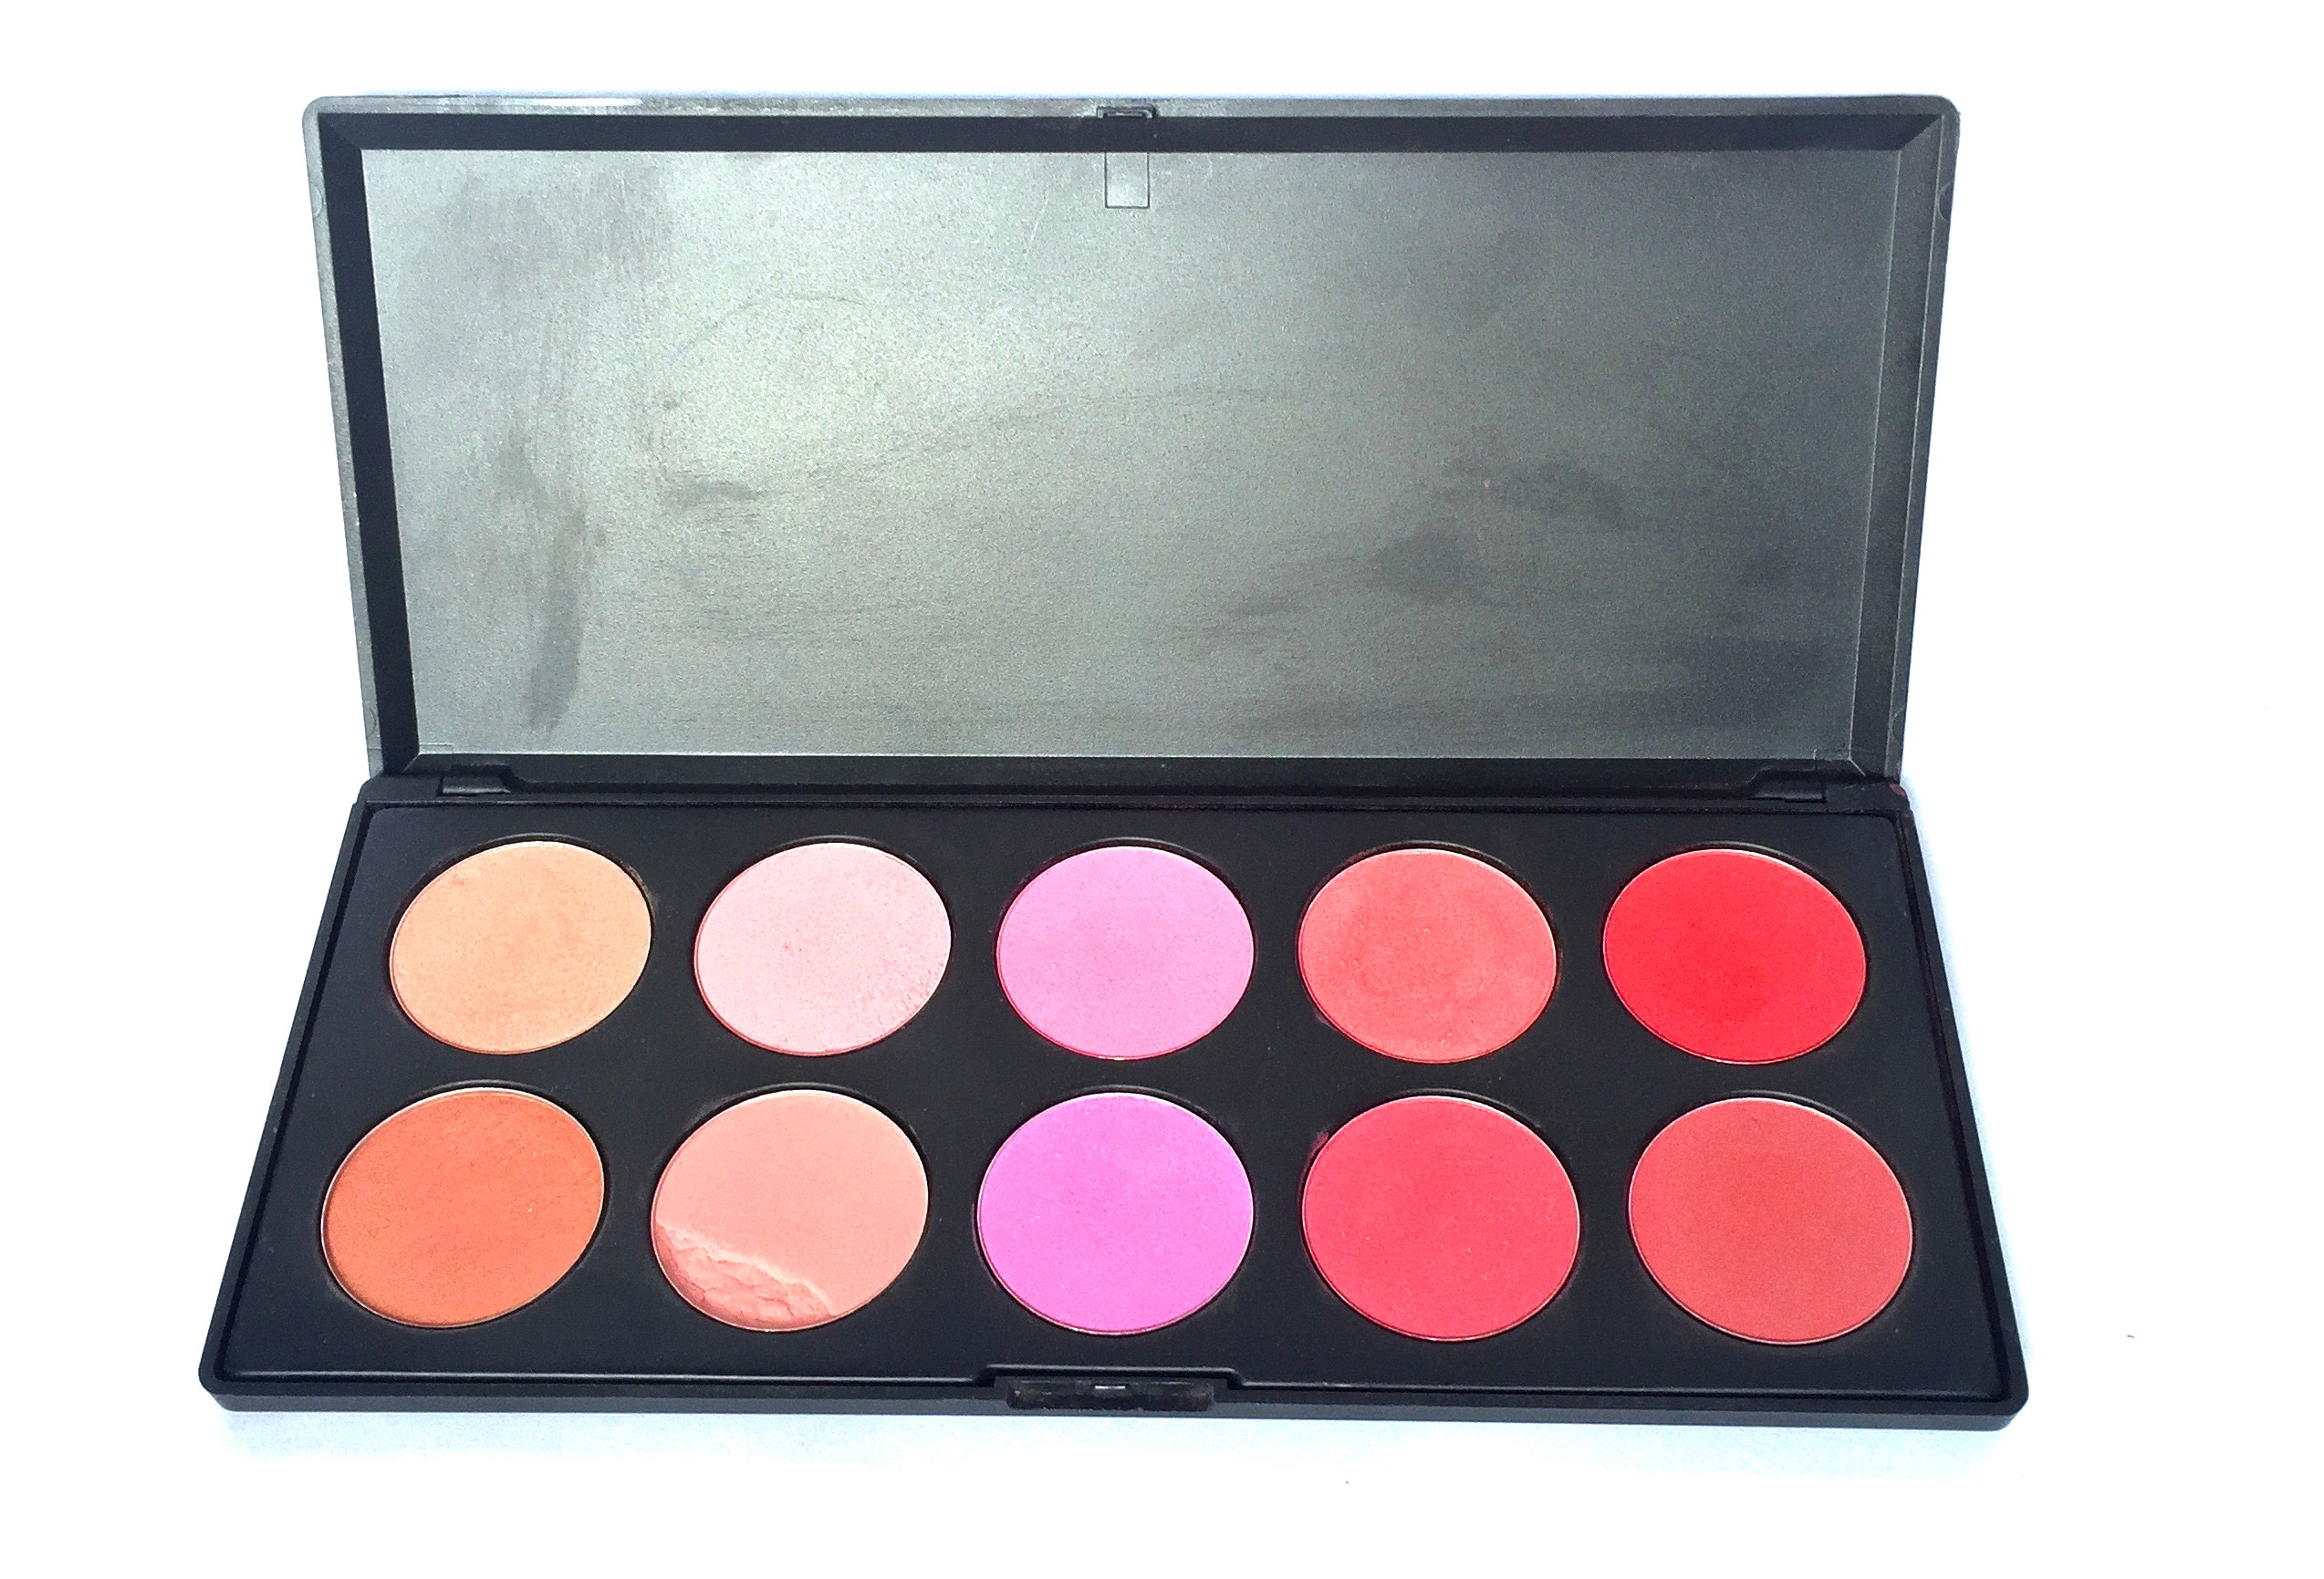 ad18efeec14 BH Cosmetics Glamorous Blush 10 Color Palette Review